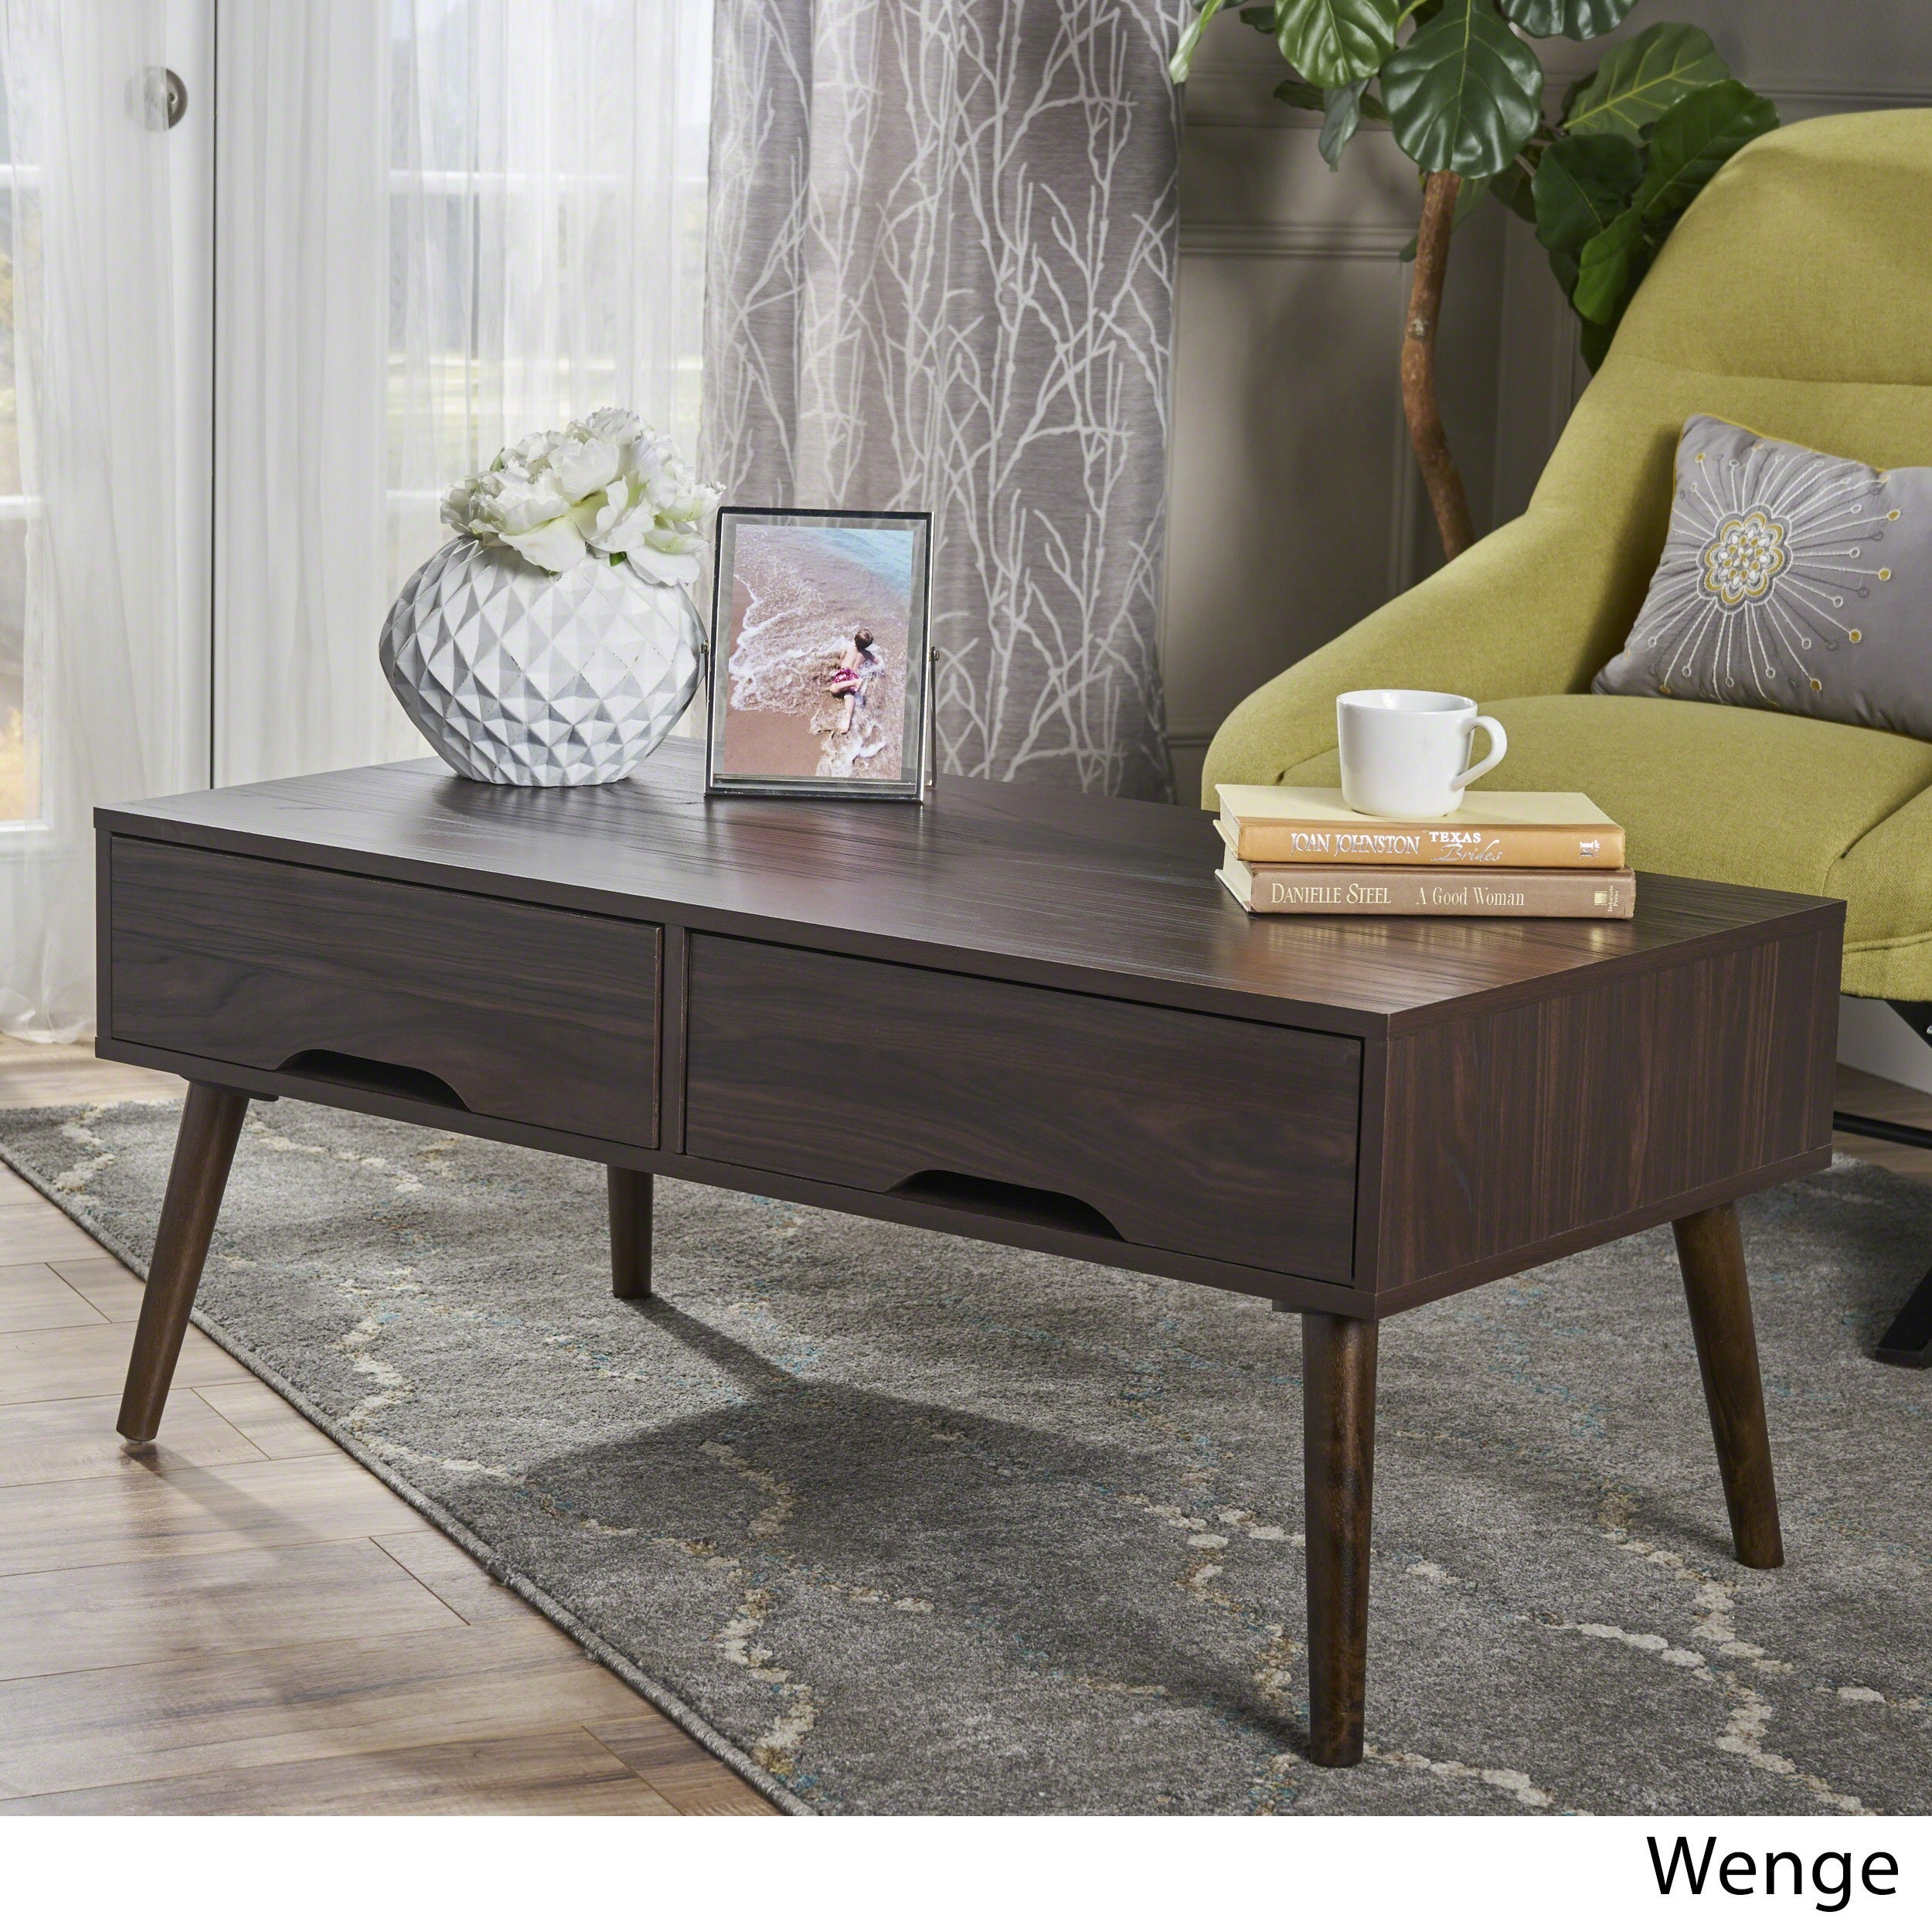 Noemi Mid Century Modern Rectangular Wood Coffee Table With Drawers By Christopher Knight Home On Free Shipping Today